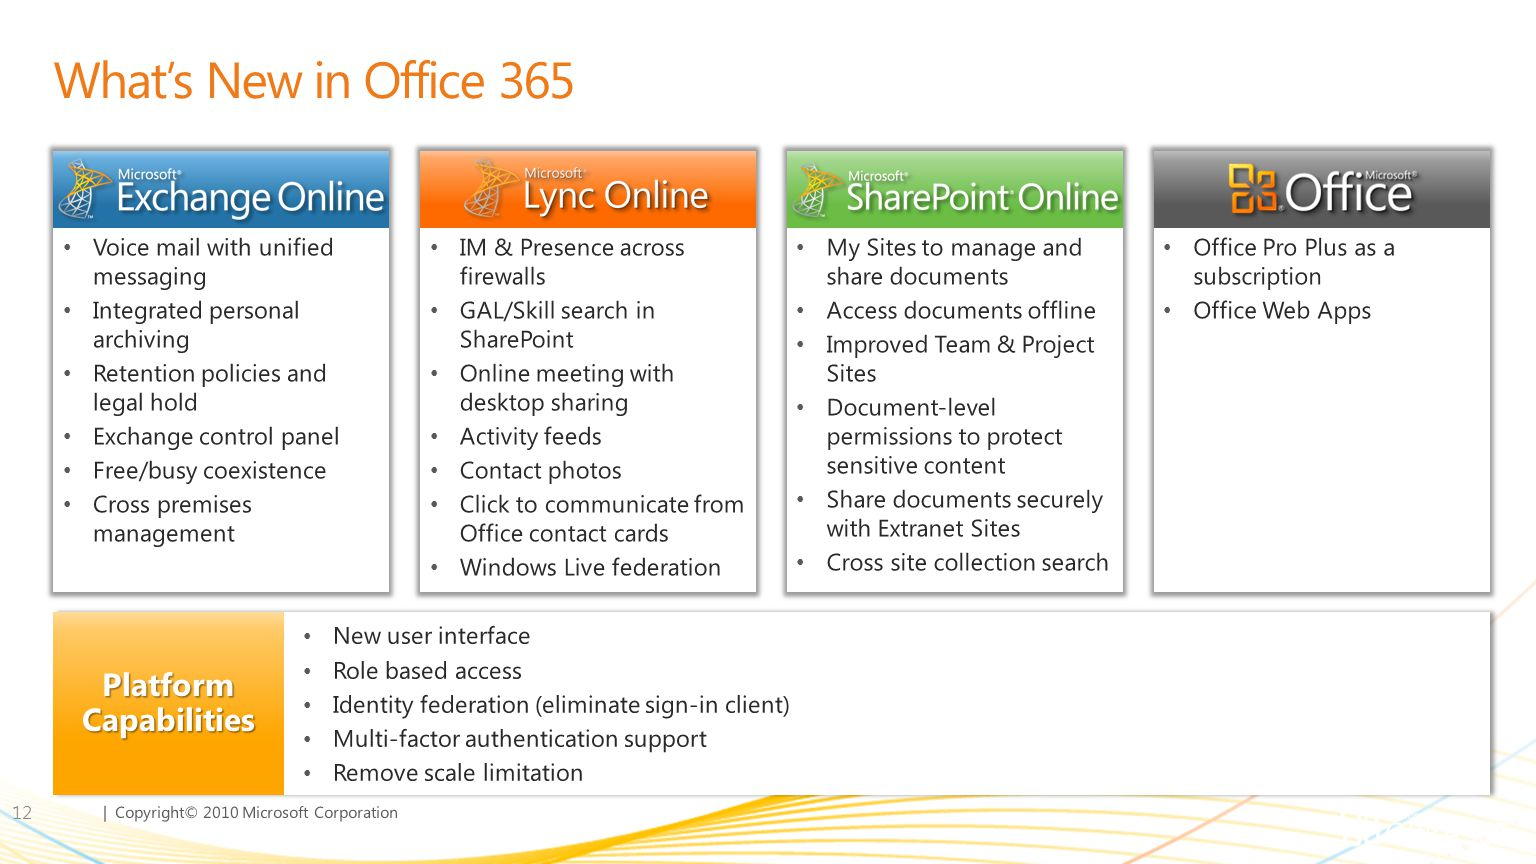 What's New in Office 365 Platform Capabilities